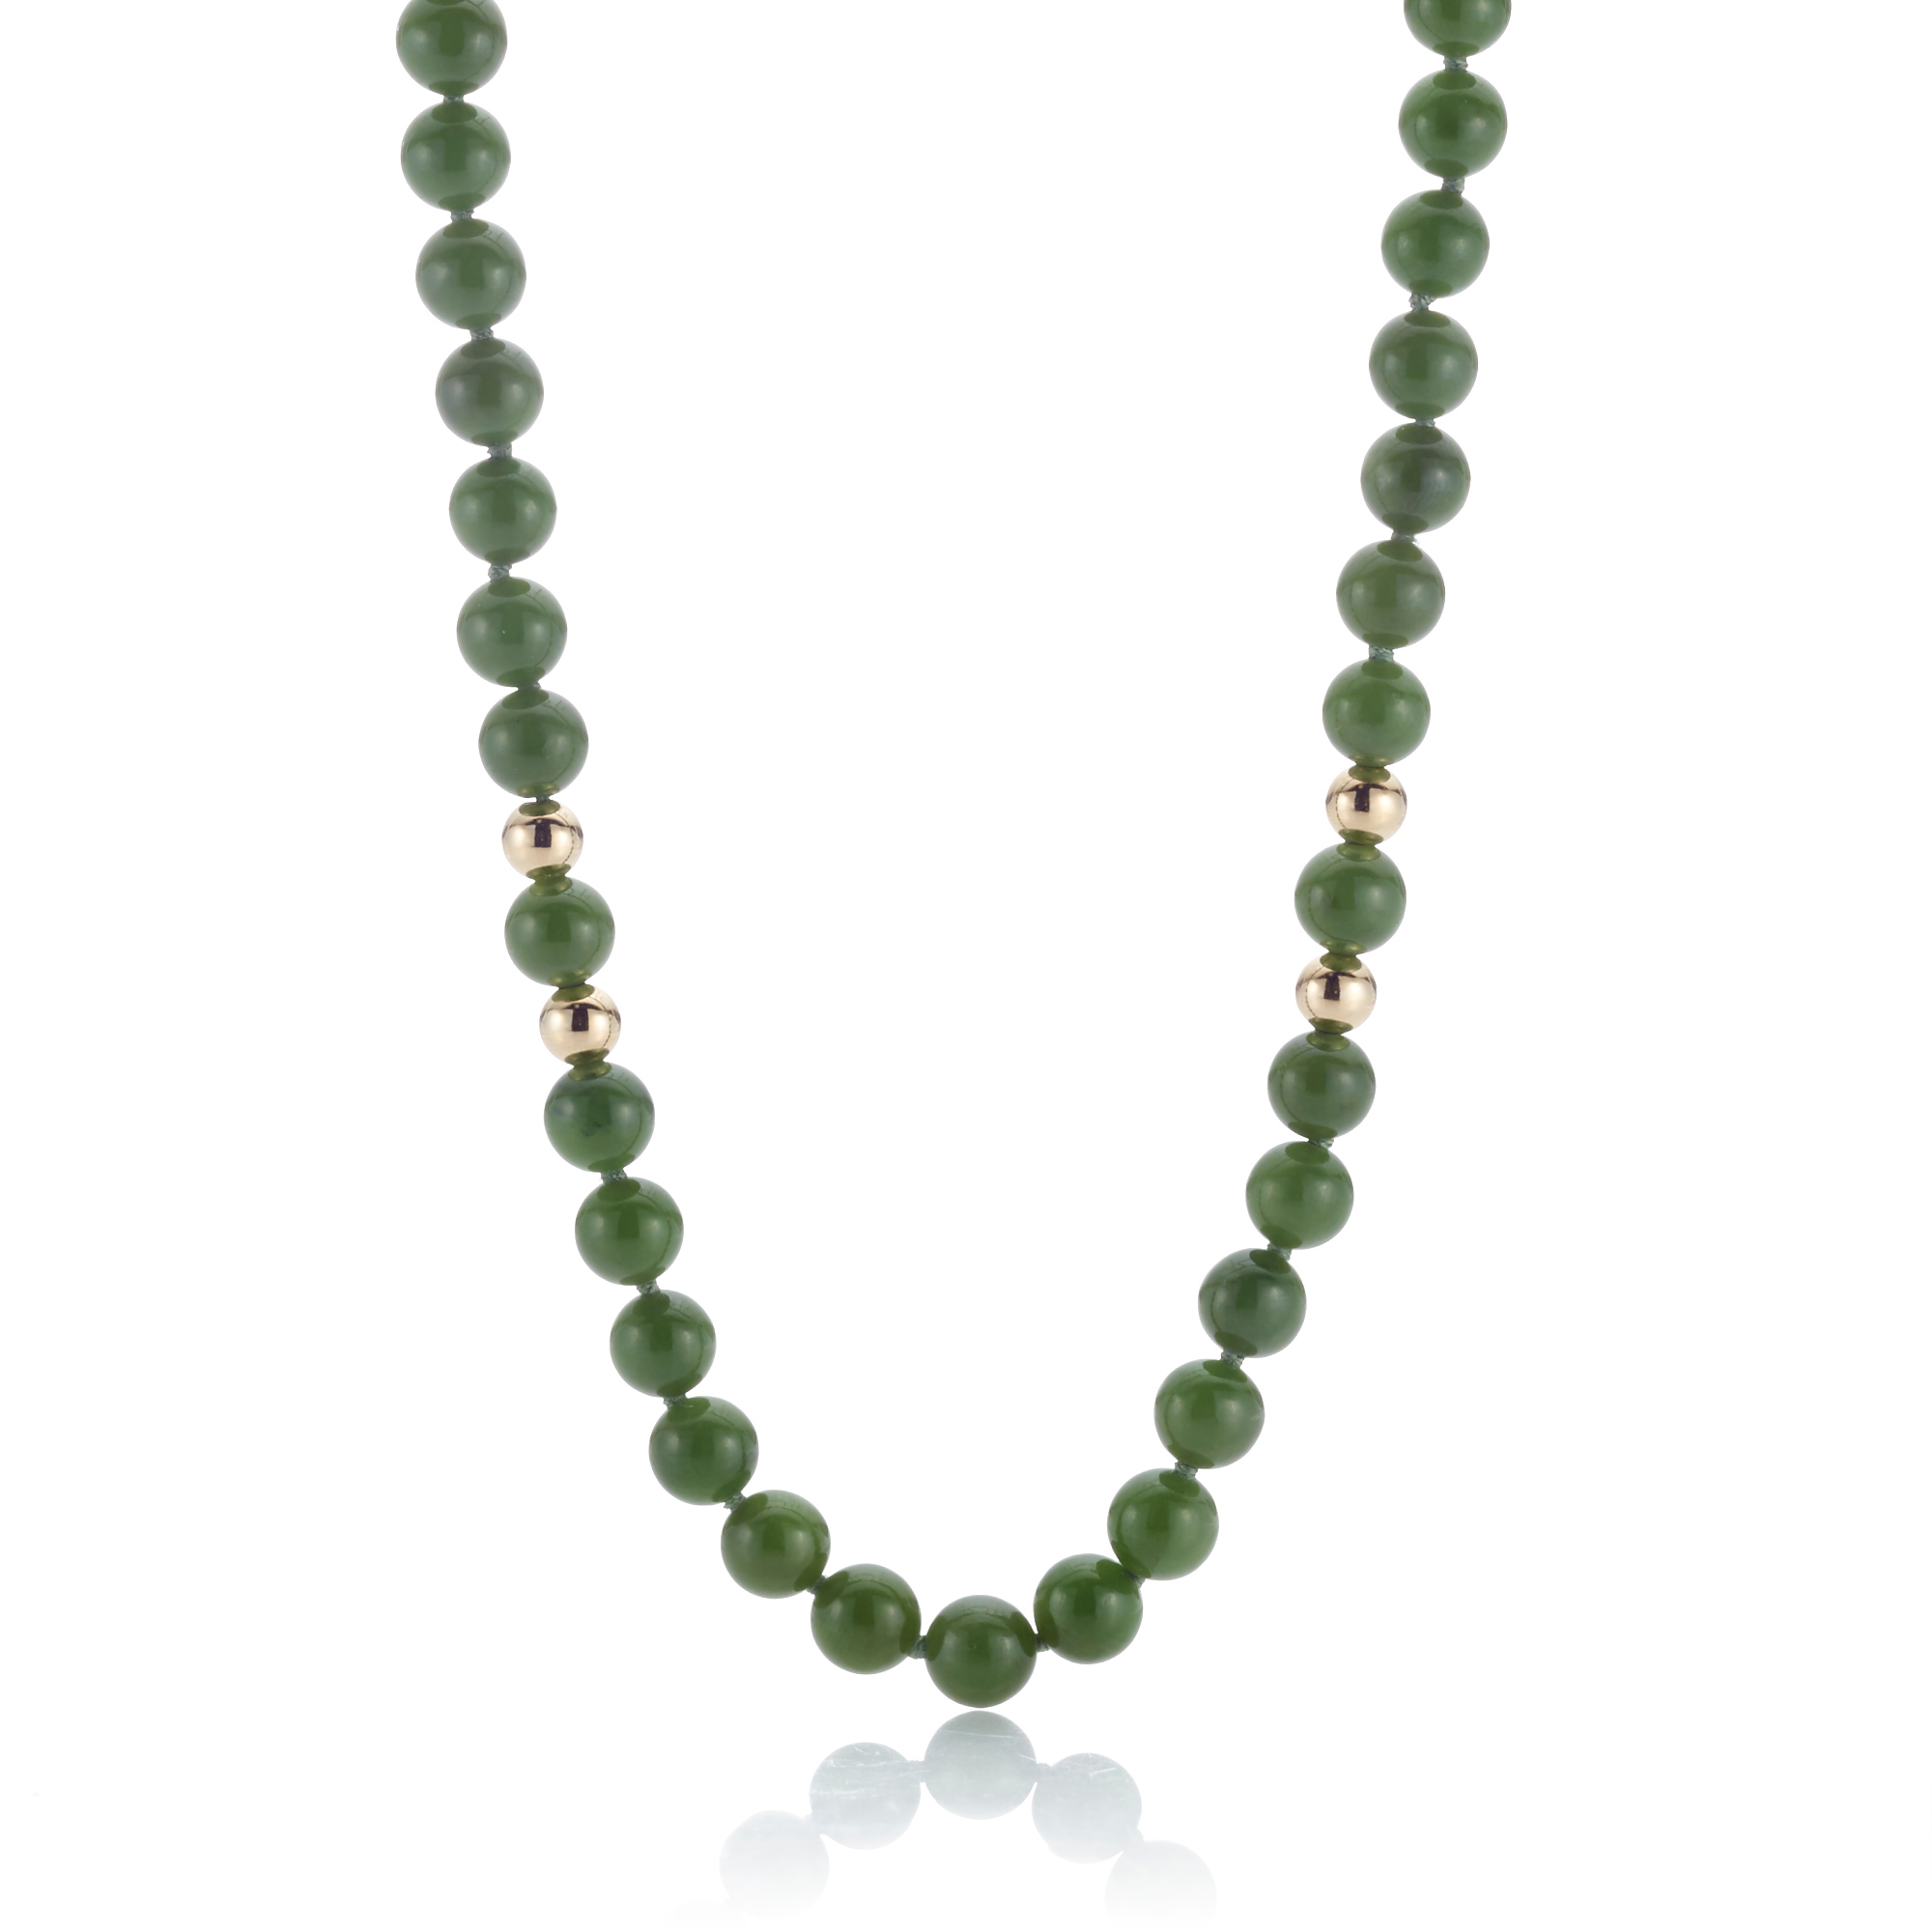 Gump's Small Green Nephrite Jade & Gold Bead Rope Necklace